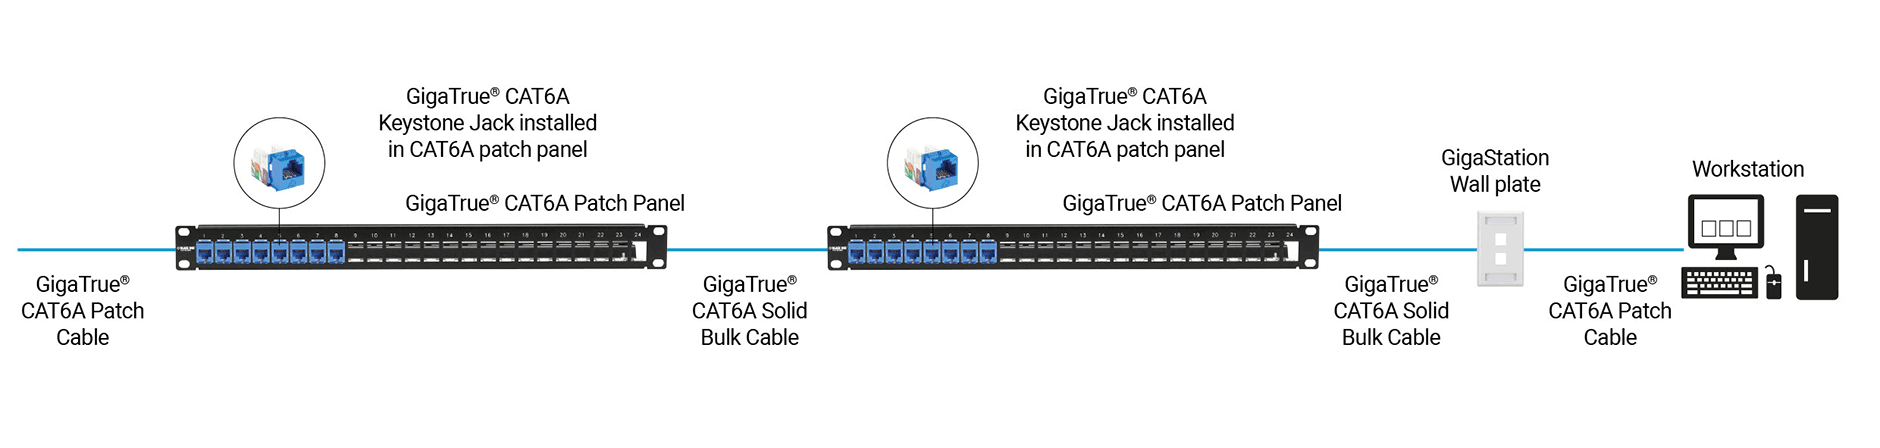 Câblage structuré CAT6A